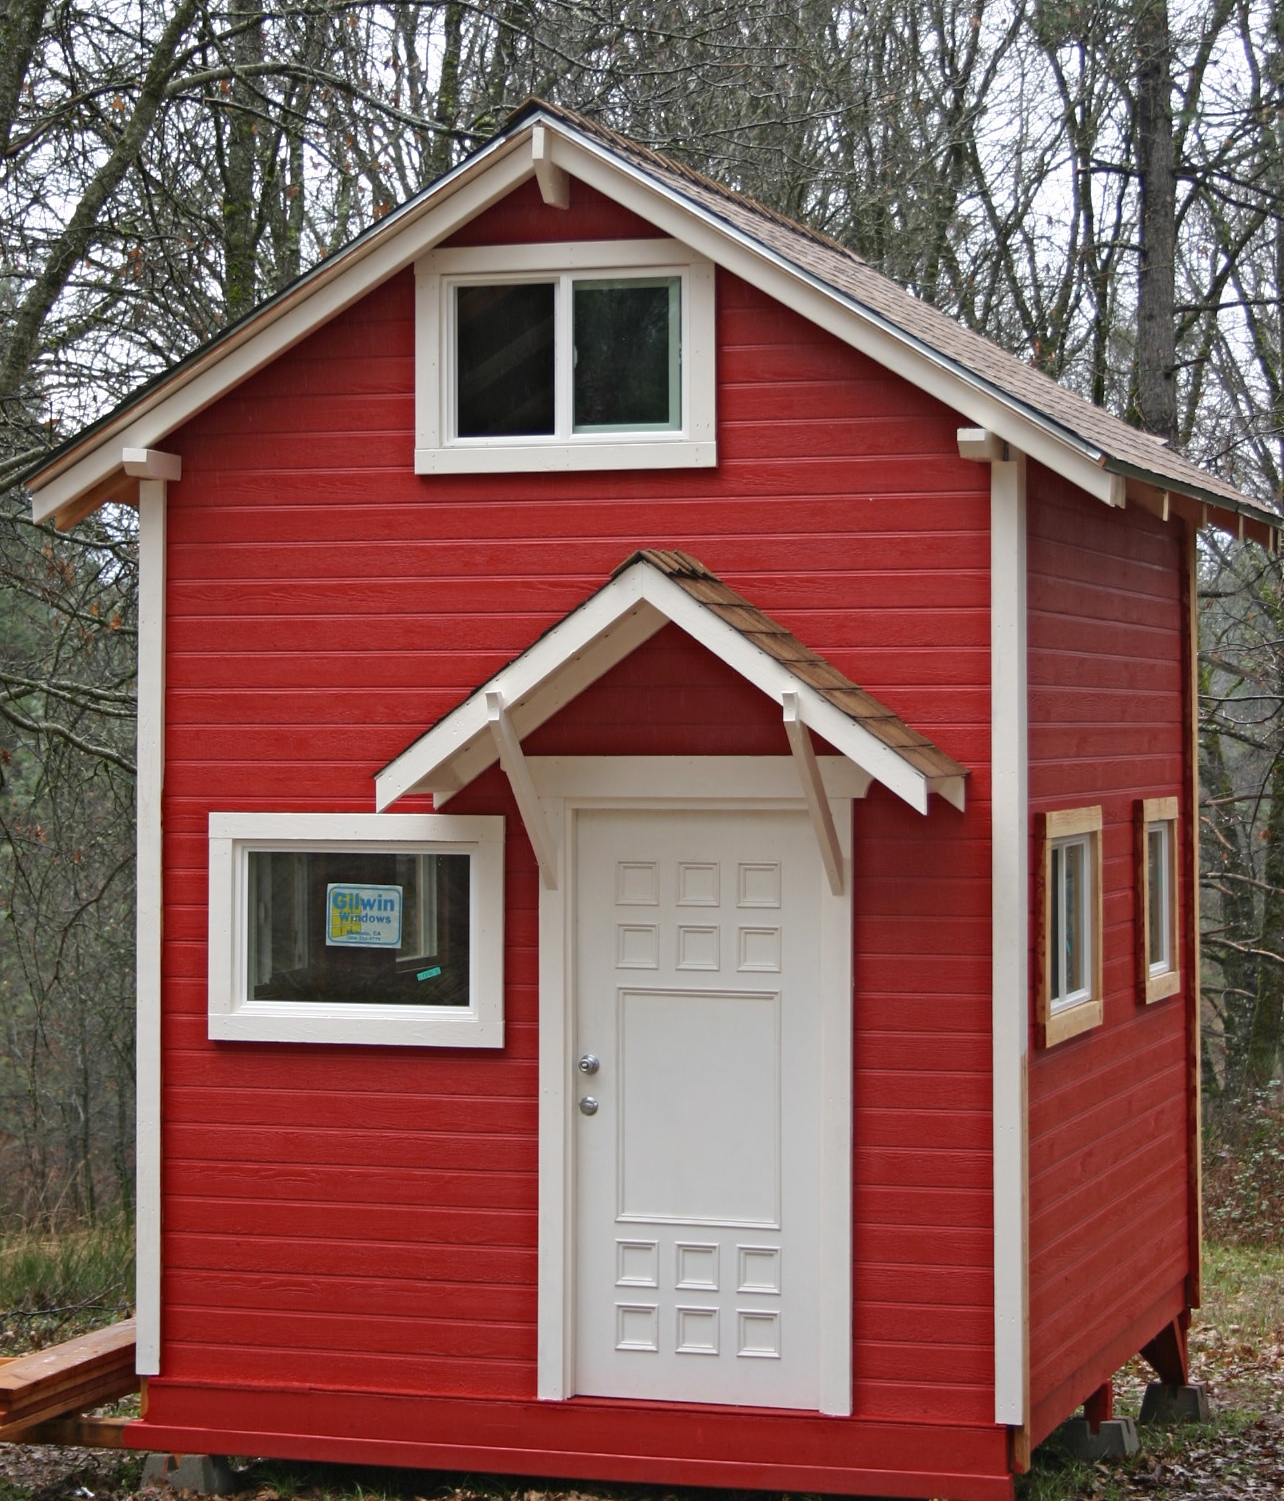 Tiny Home Designs: 10'x12' Tiny Garden House Cottage